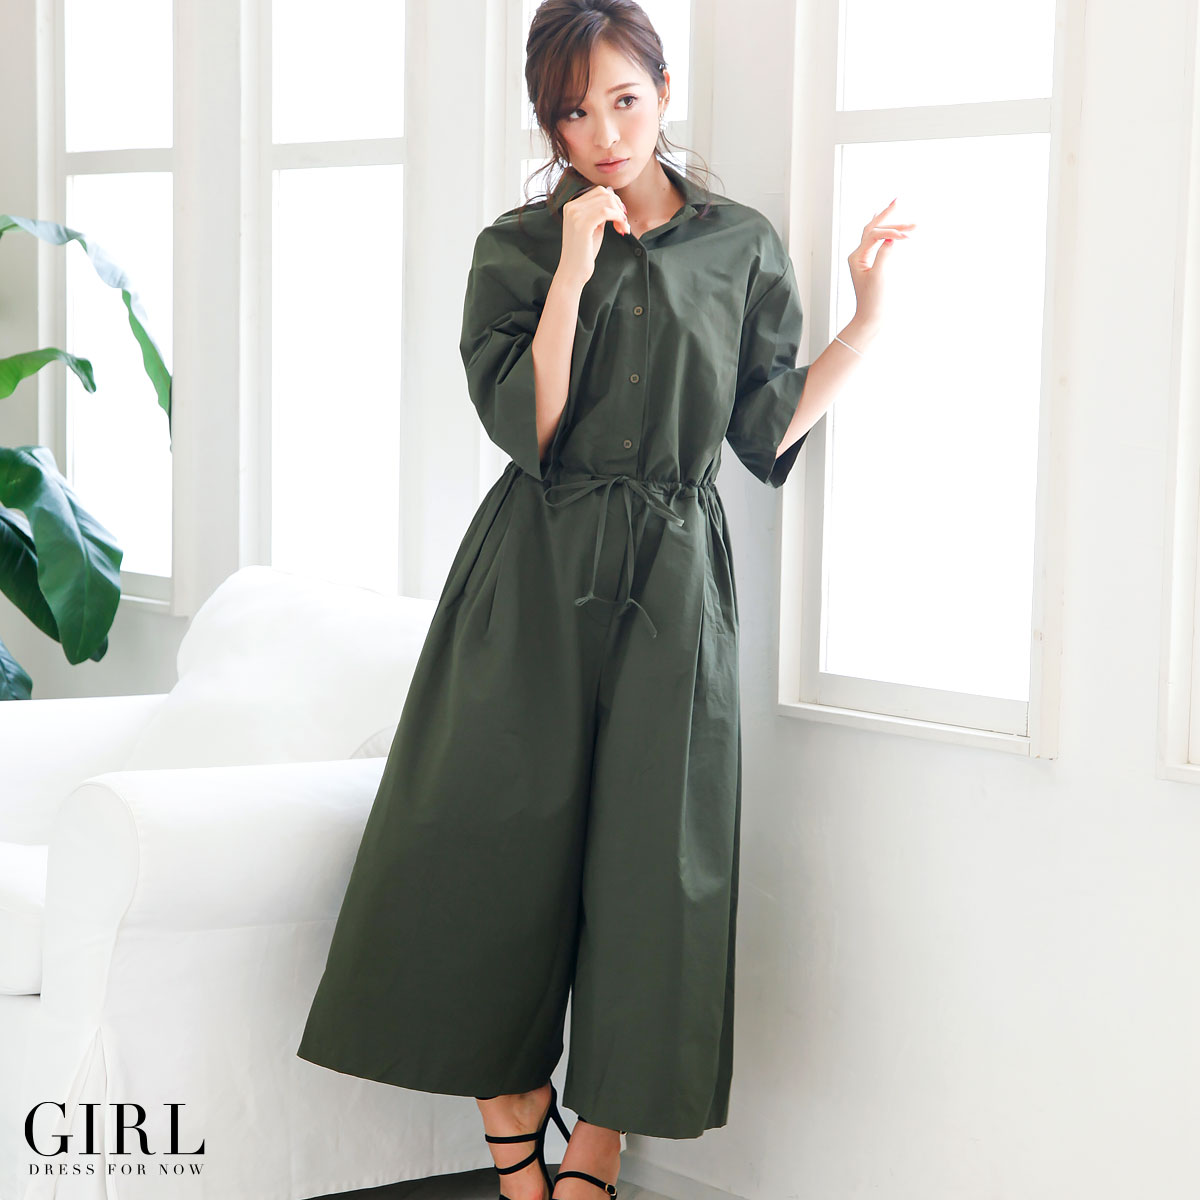 All-in-one pants wide pants fair pants trouser suit pants dress overalls shirt party dress one piece dress invited casual commuter Office pants style long sleeve sleeves is with sleeves